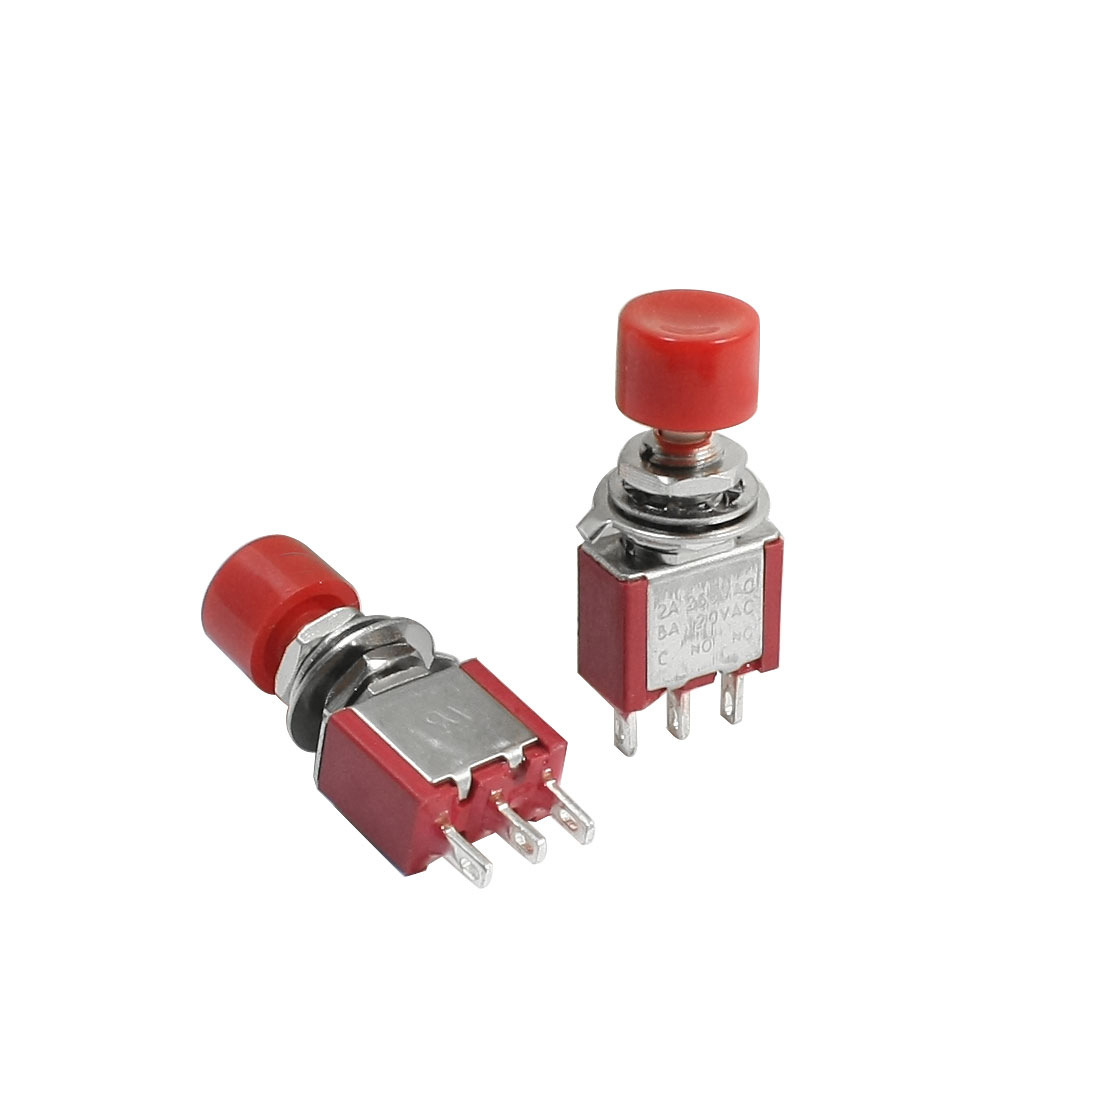 2PCS AC250V 2A 120V 6A 6mm Panel Mount Dia SPDT Momentary Red Toggle Switch